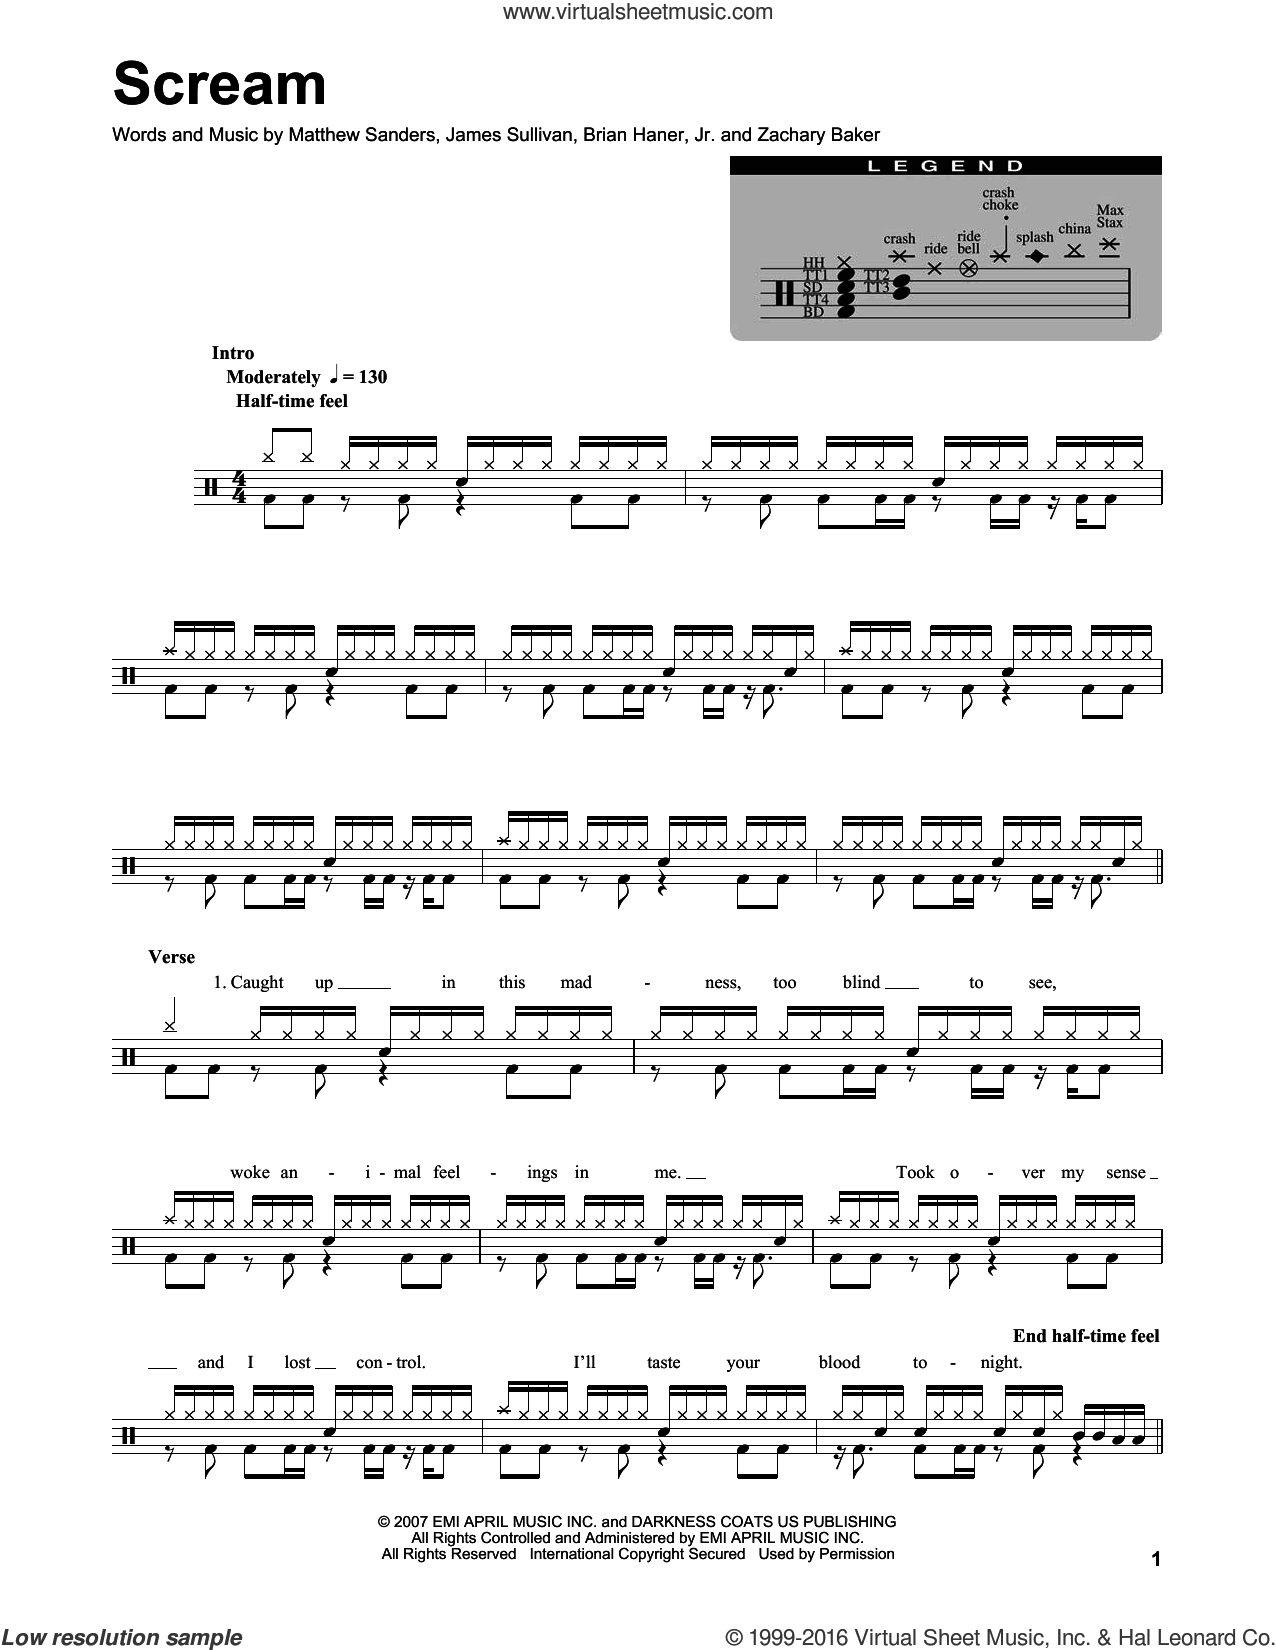 Scream sheet music for drums by Avenged Sevenfold, Brian Haner, Jr., James Sullivan, Matthew Sanders and Zachary Baker, intermediate skill level